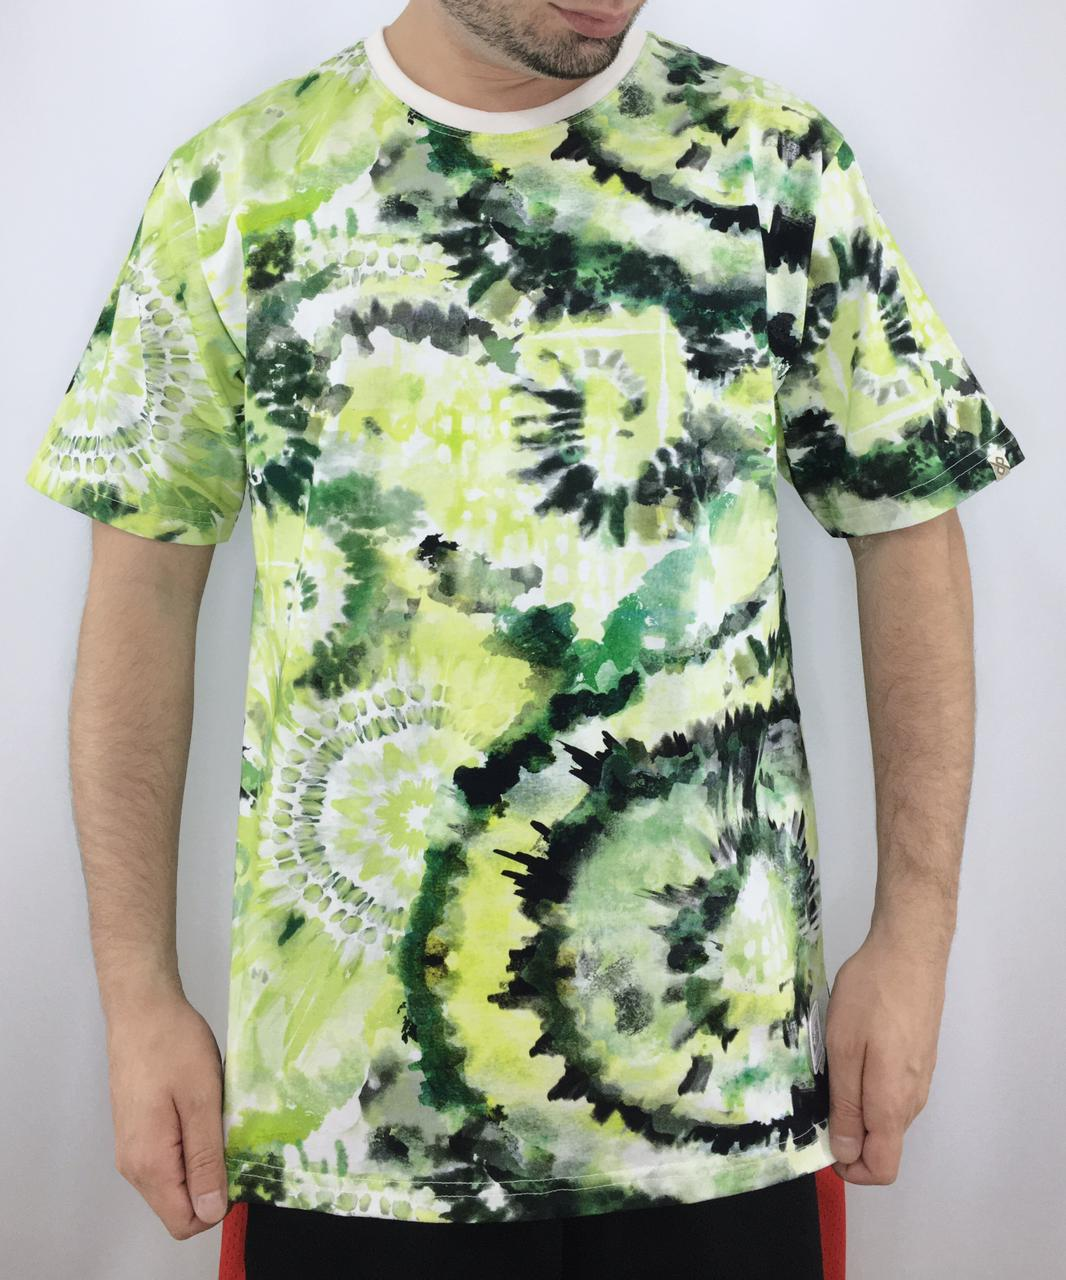 CAMISETA POSIBLE TIE DYE GREEN